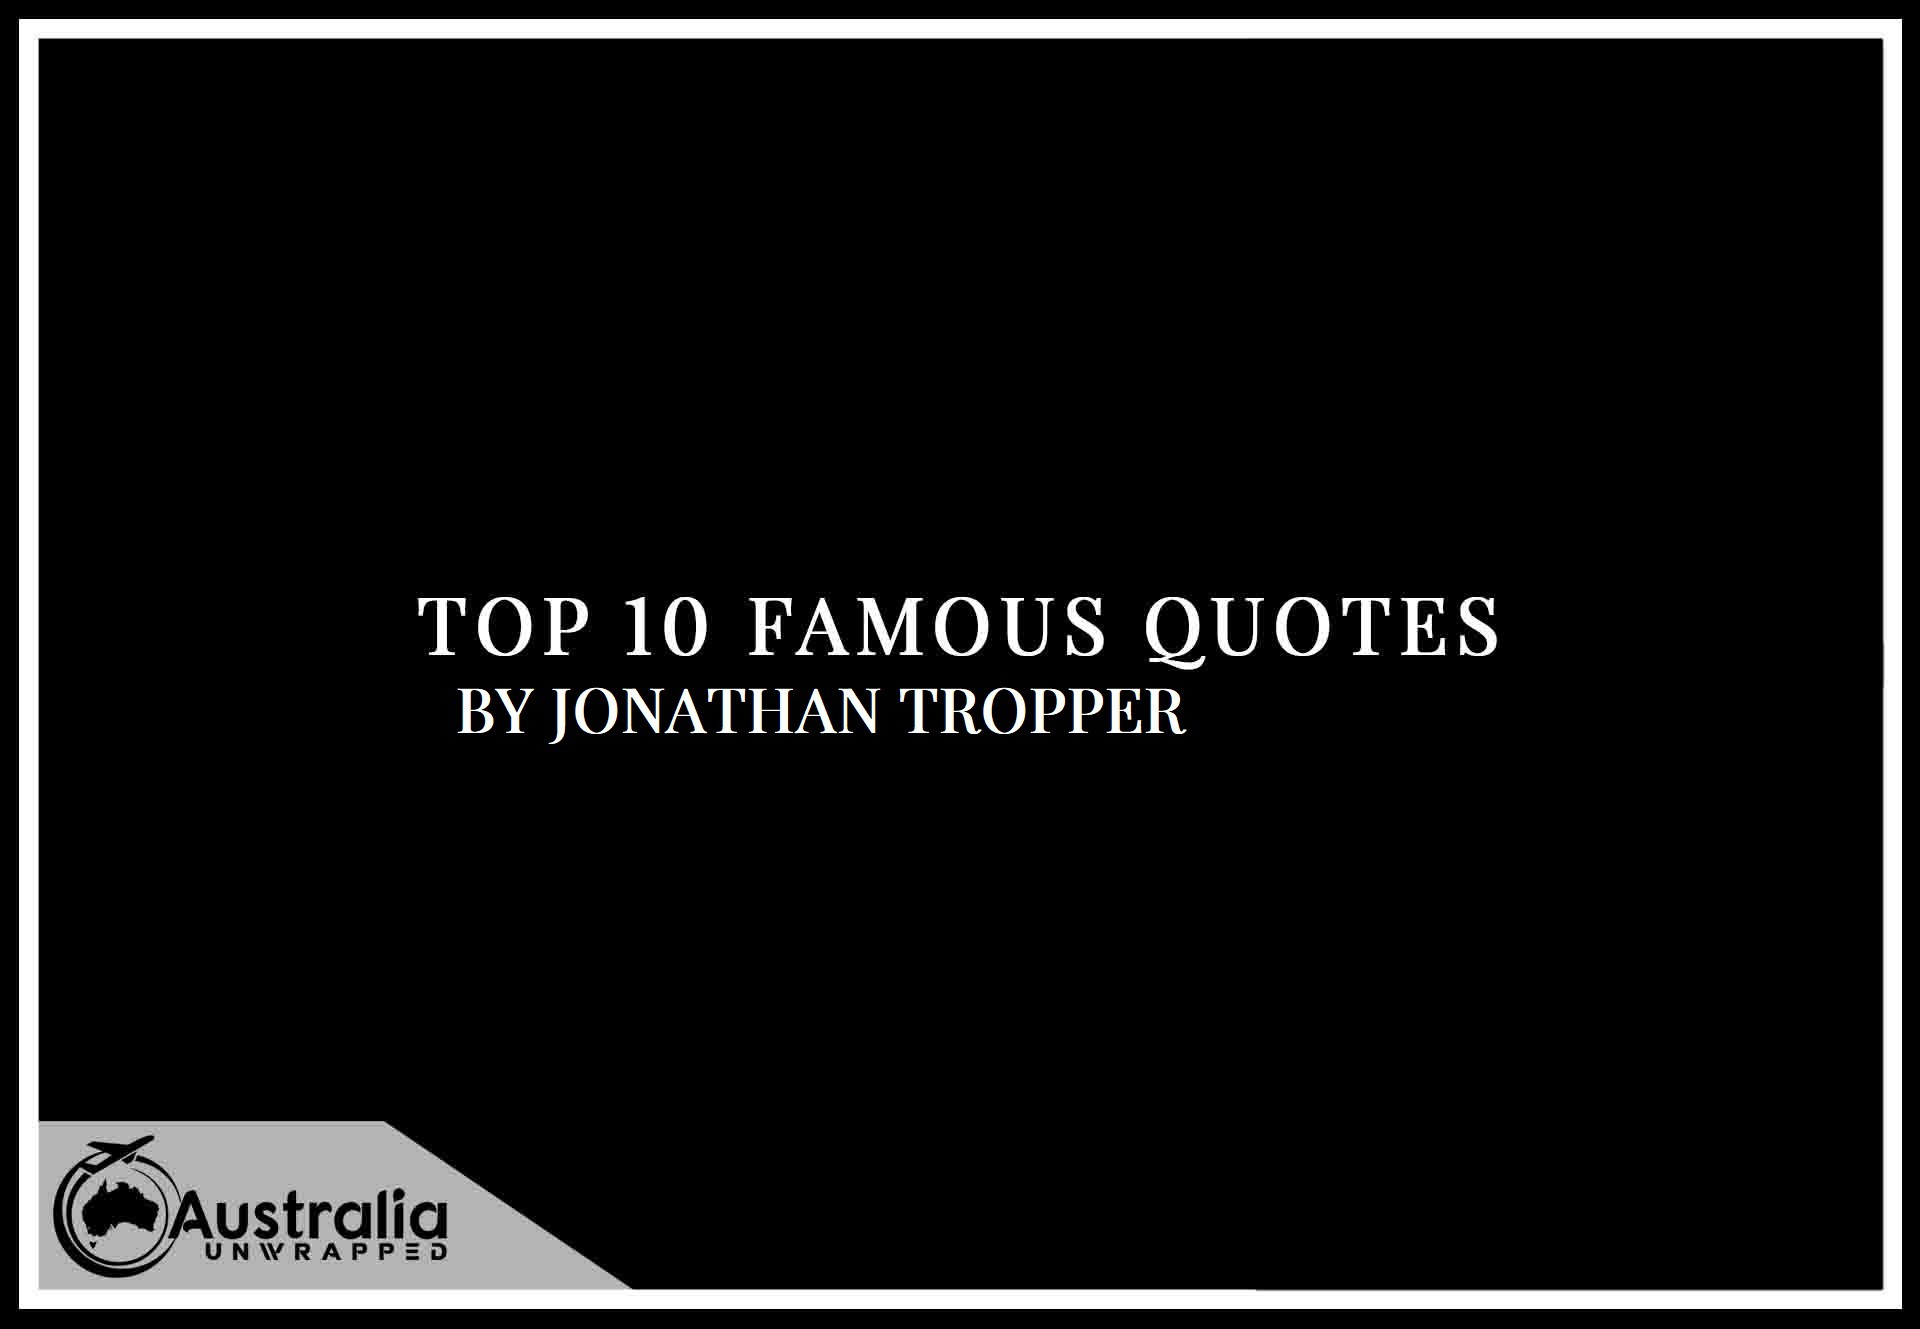 Top 10 Famous Quotes by Author Jonathan Tropper